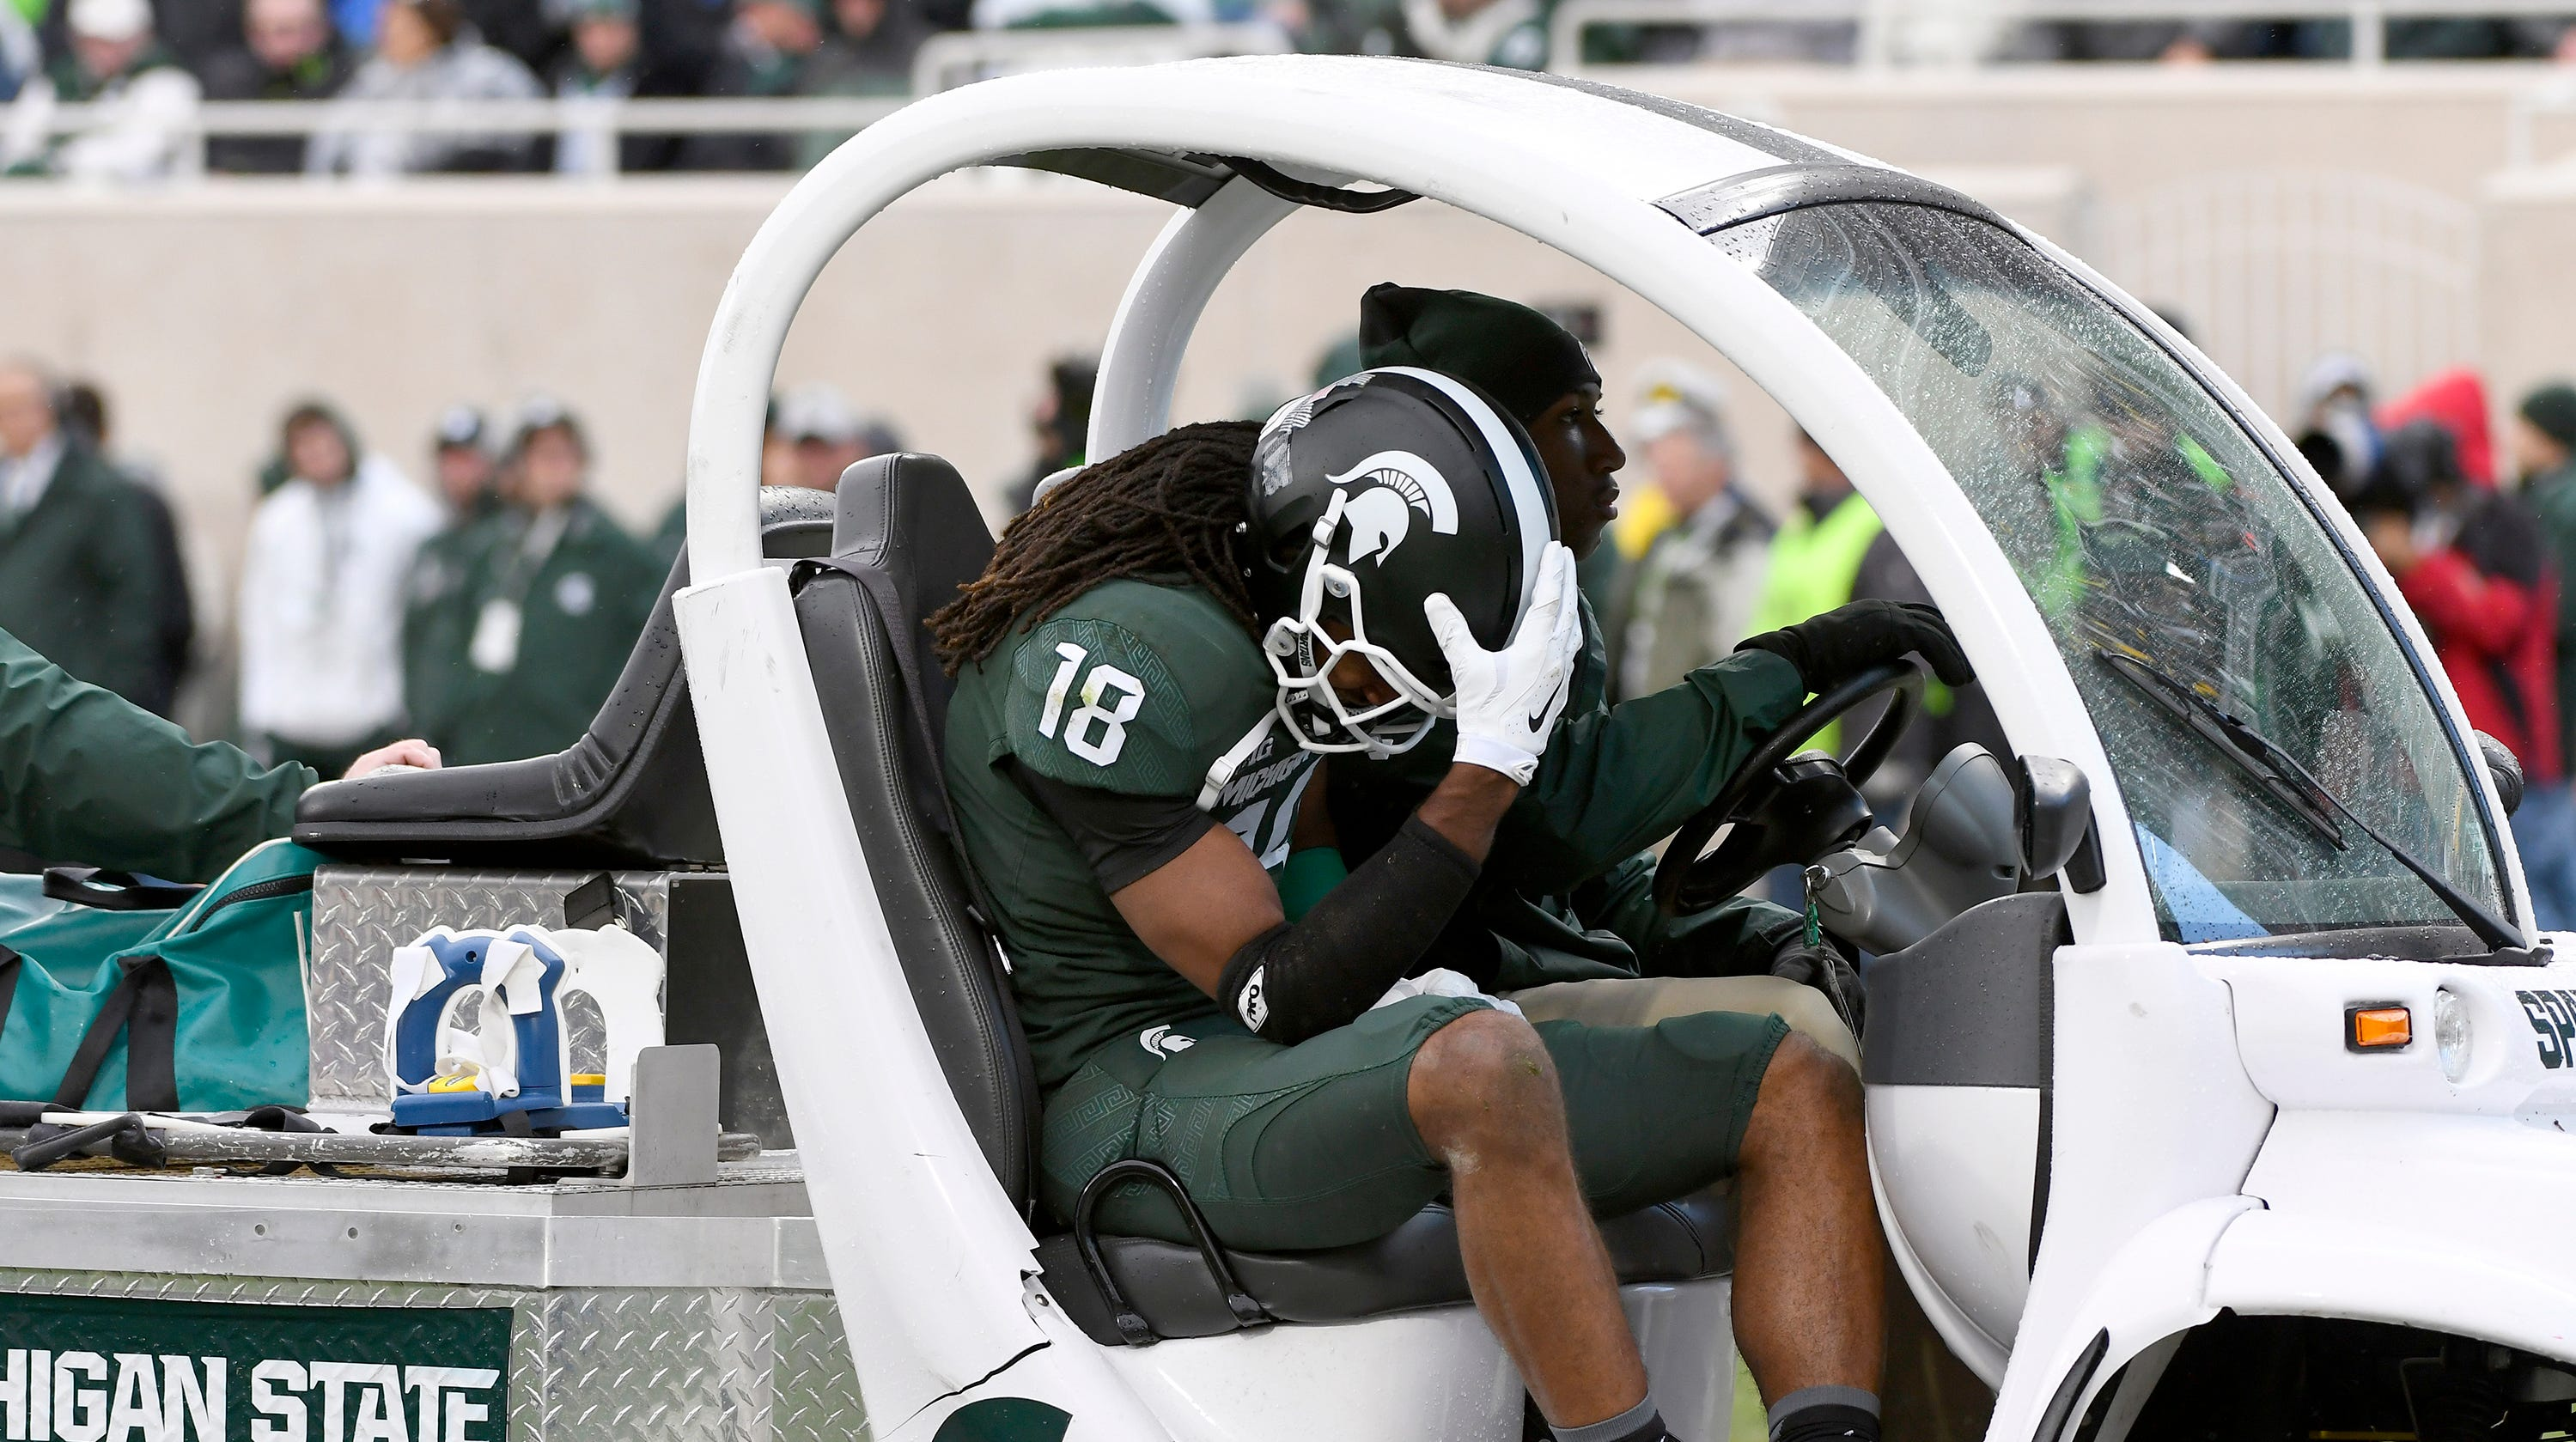 Michigan State receiver Felton Davis III leaves the field with a season-ending injury to his achilles tendon.